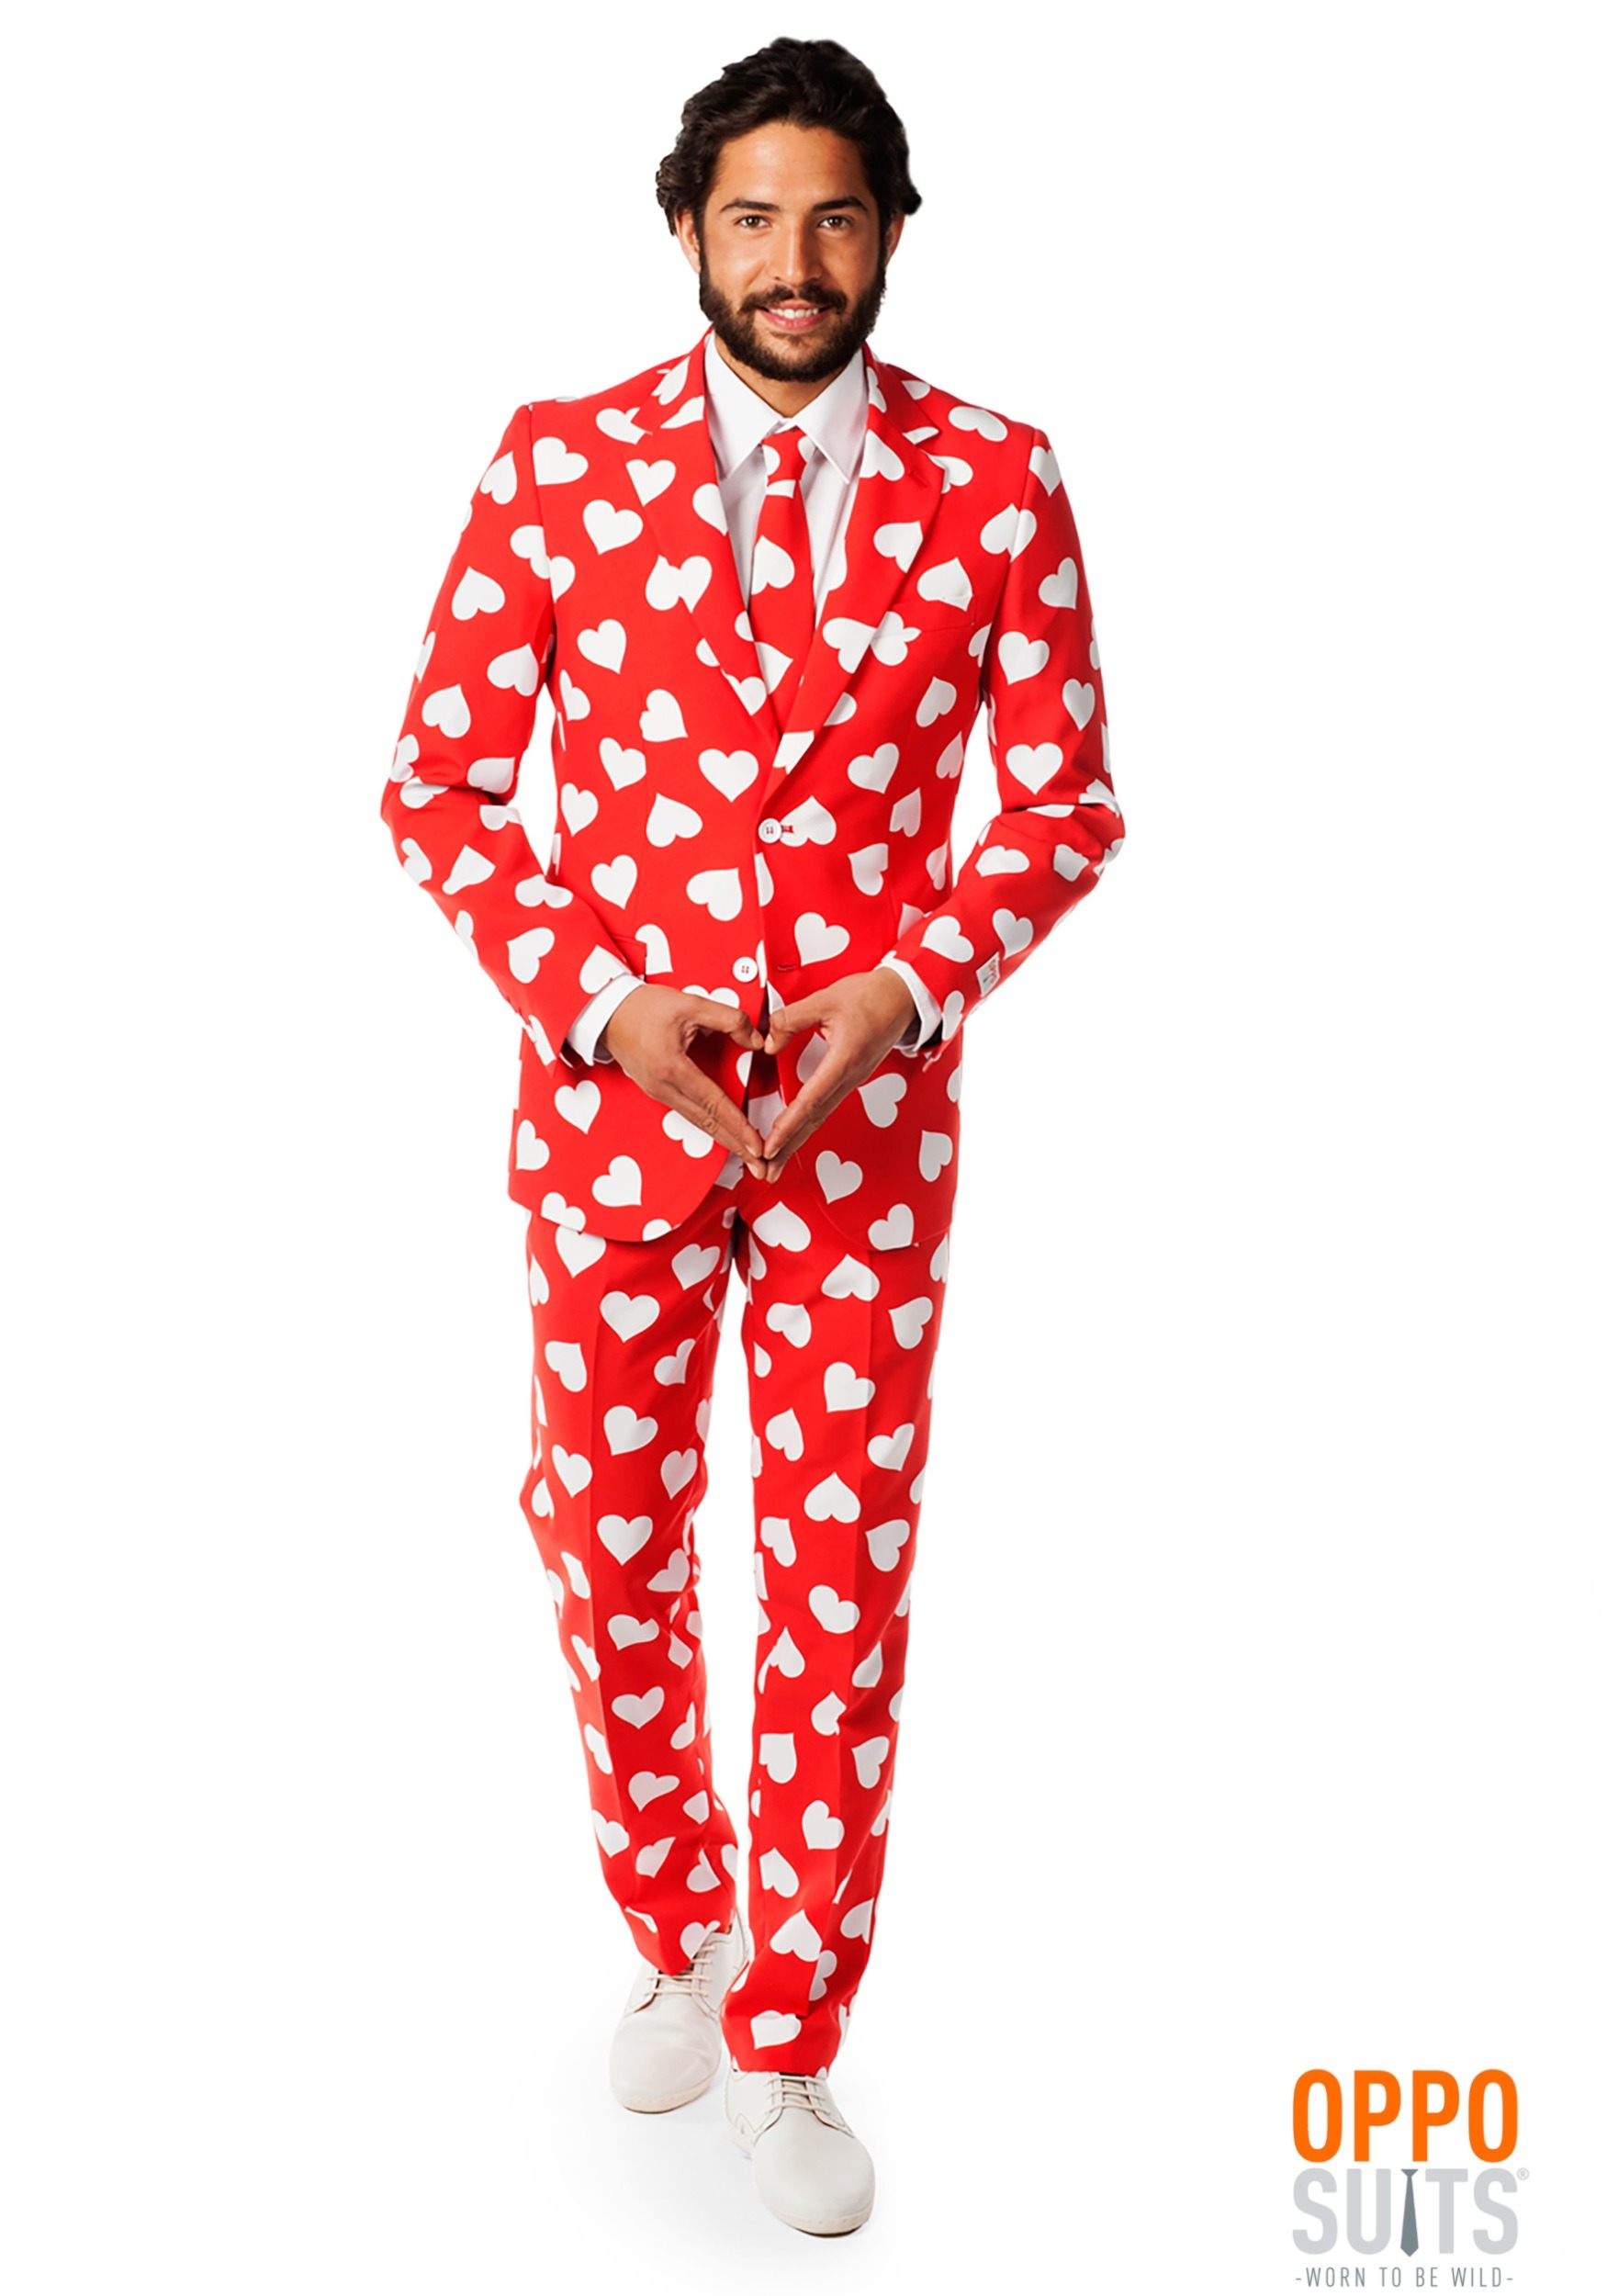 f84584d7a5 OppoSuits Mr. Lover Heart Costume Suit for Men